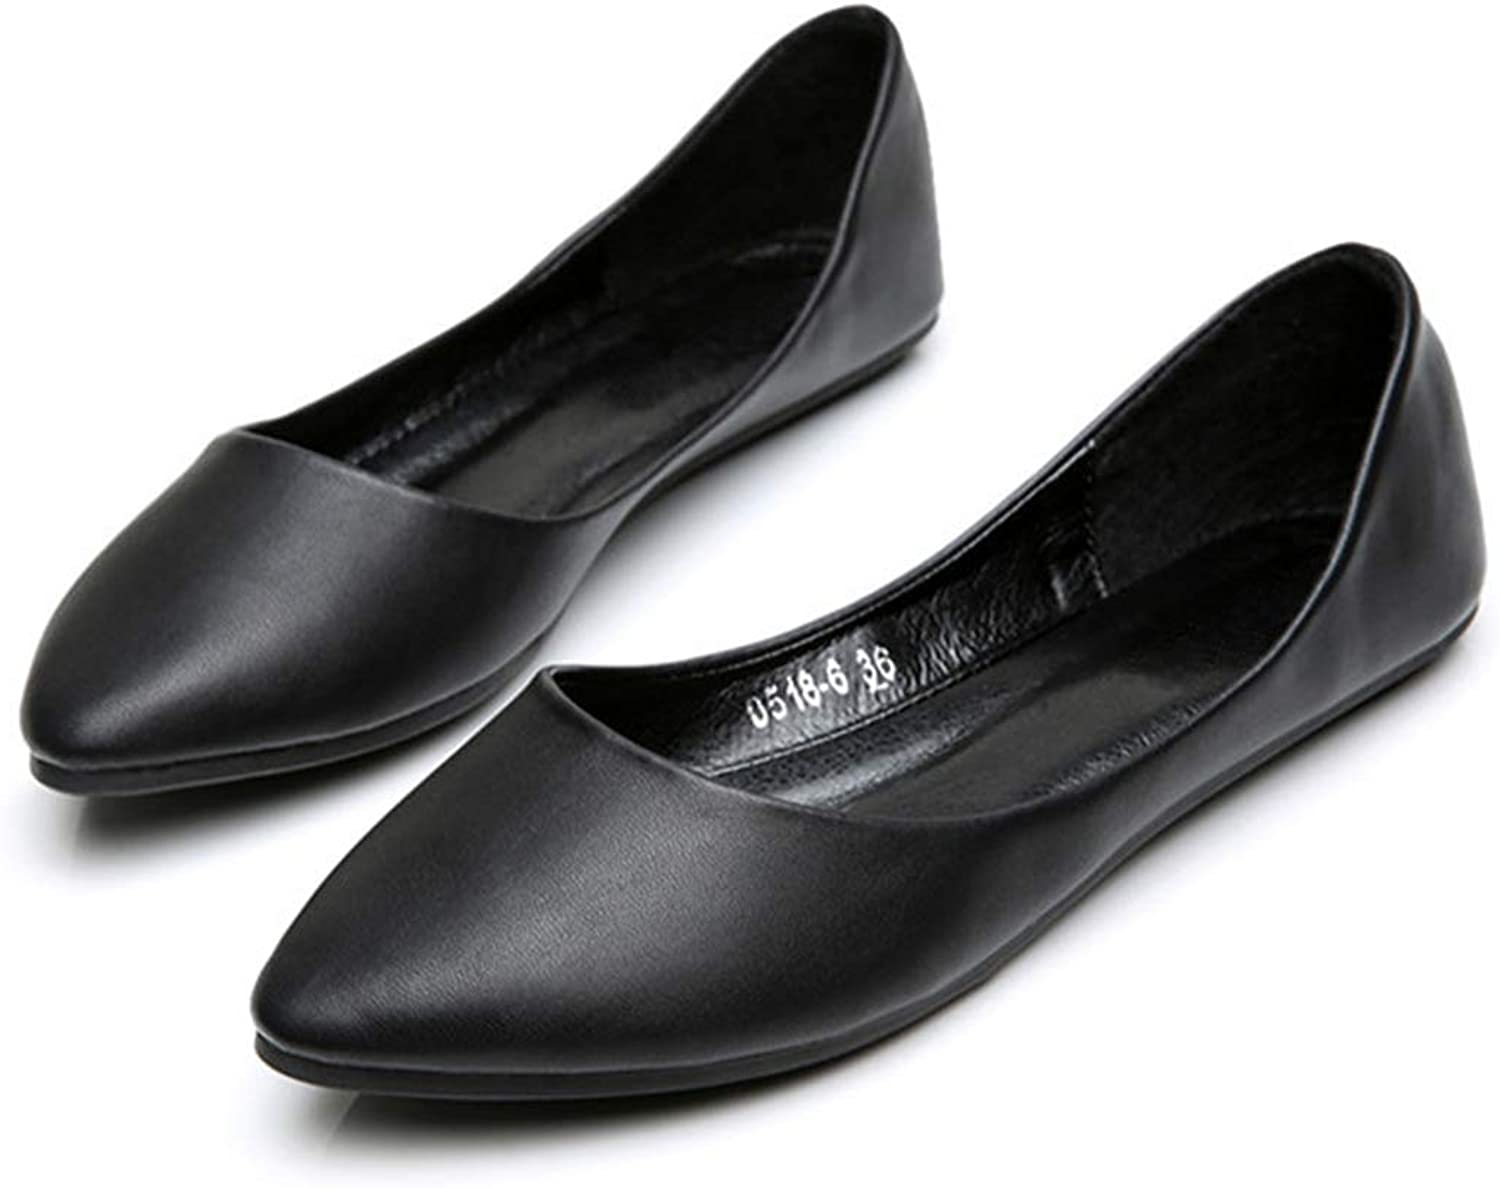 Owen Moll Women Flats, Classic Pointed Toe Slip On Shallow Mouth Ballet Loafers shoes